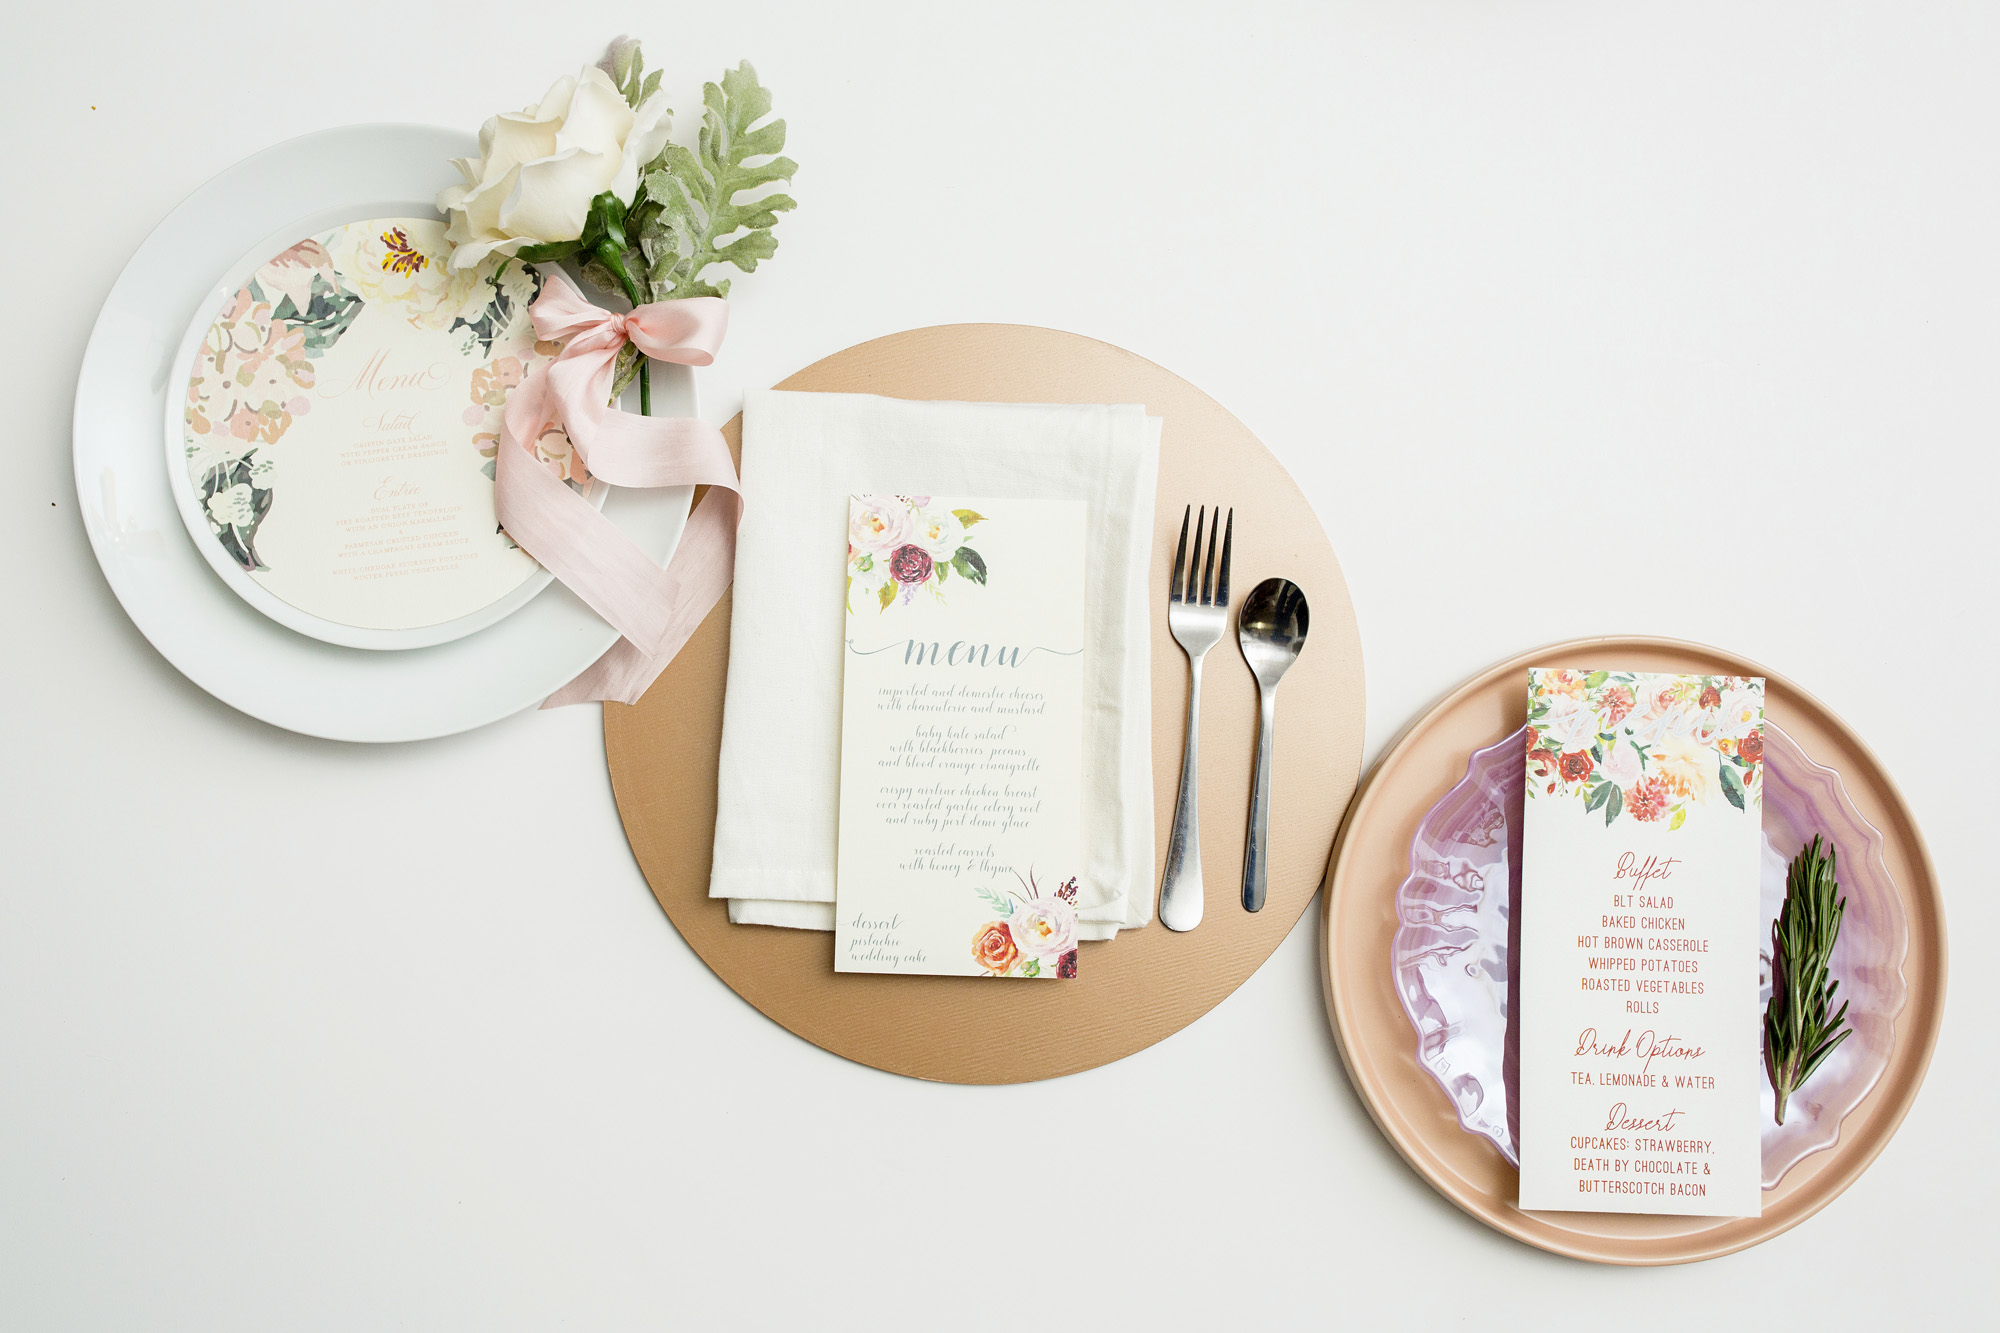 Seriously_Sabrina_Photography_Lexington_Kentucky_Product_Simply_Done_Invites_February_2019_103